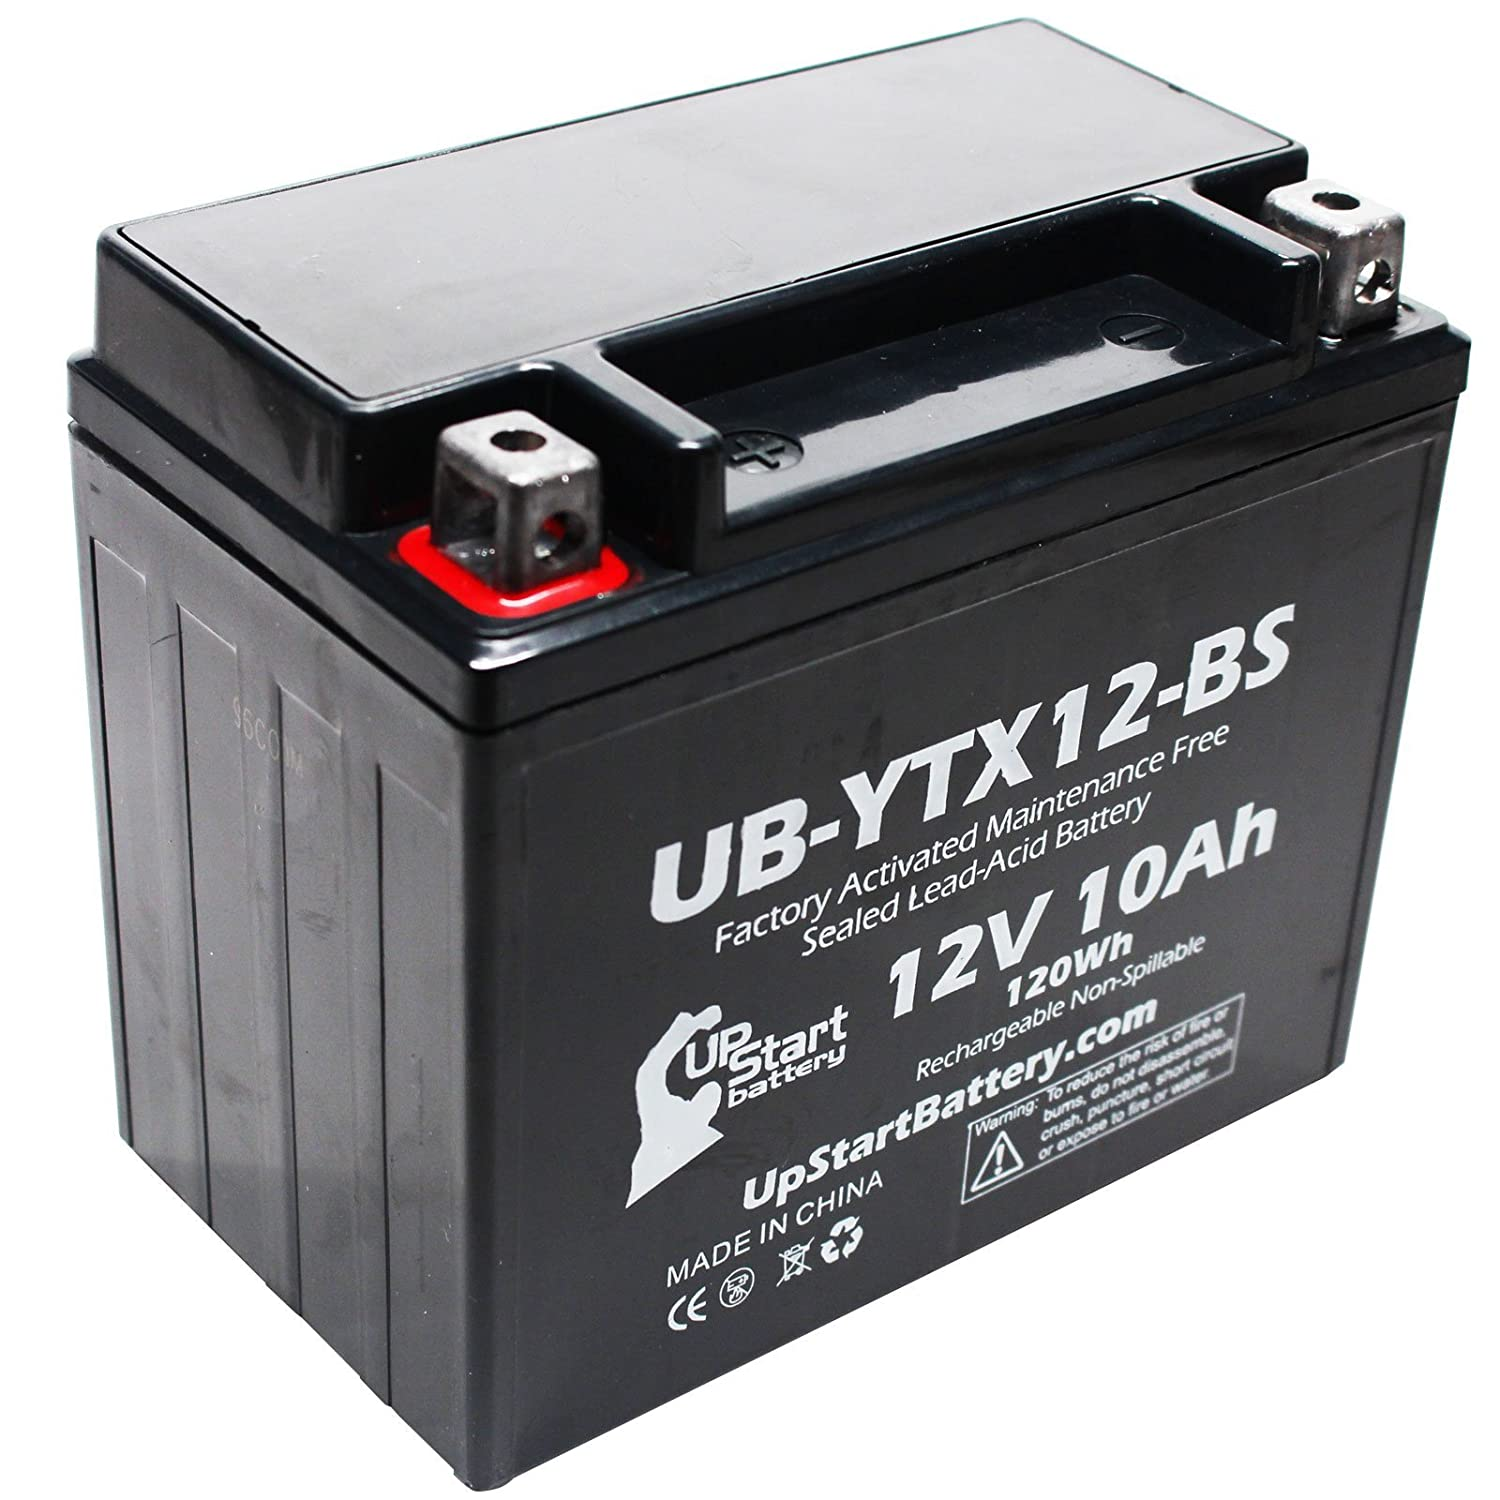 The best budget ATV battery is the Upstart Battery UB-YTX12-BS